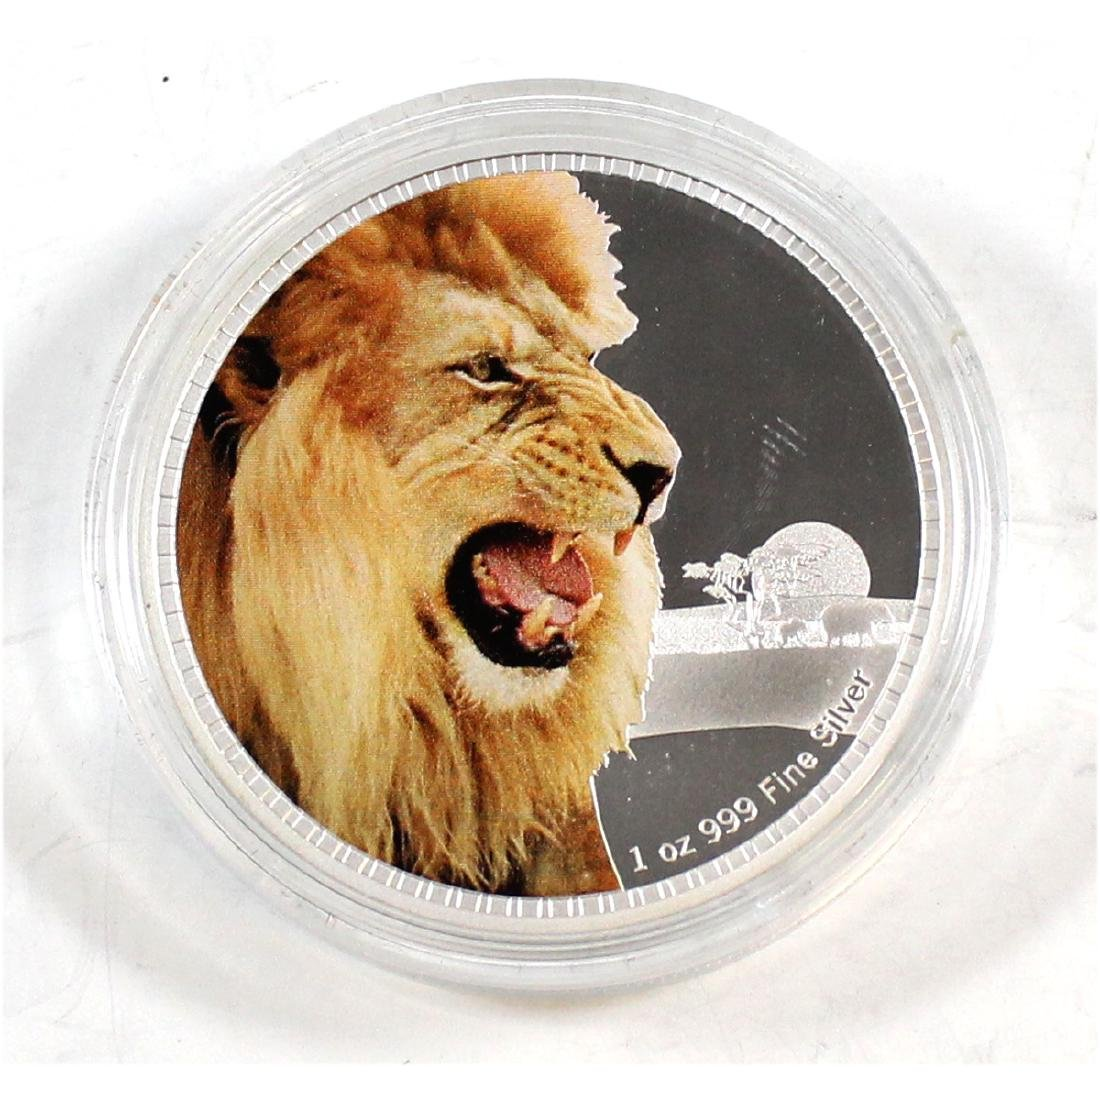 2016 Proof Kings of the Continents African Lion 1 oz